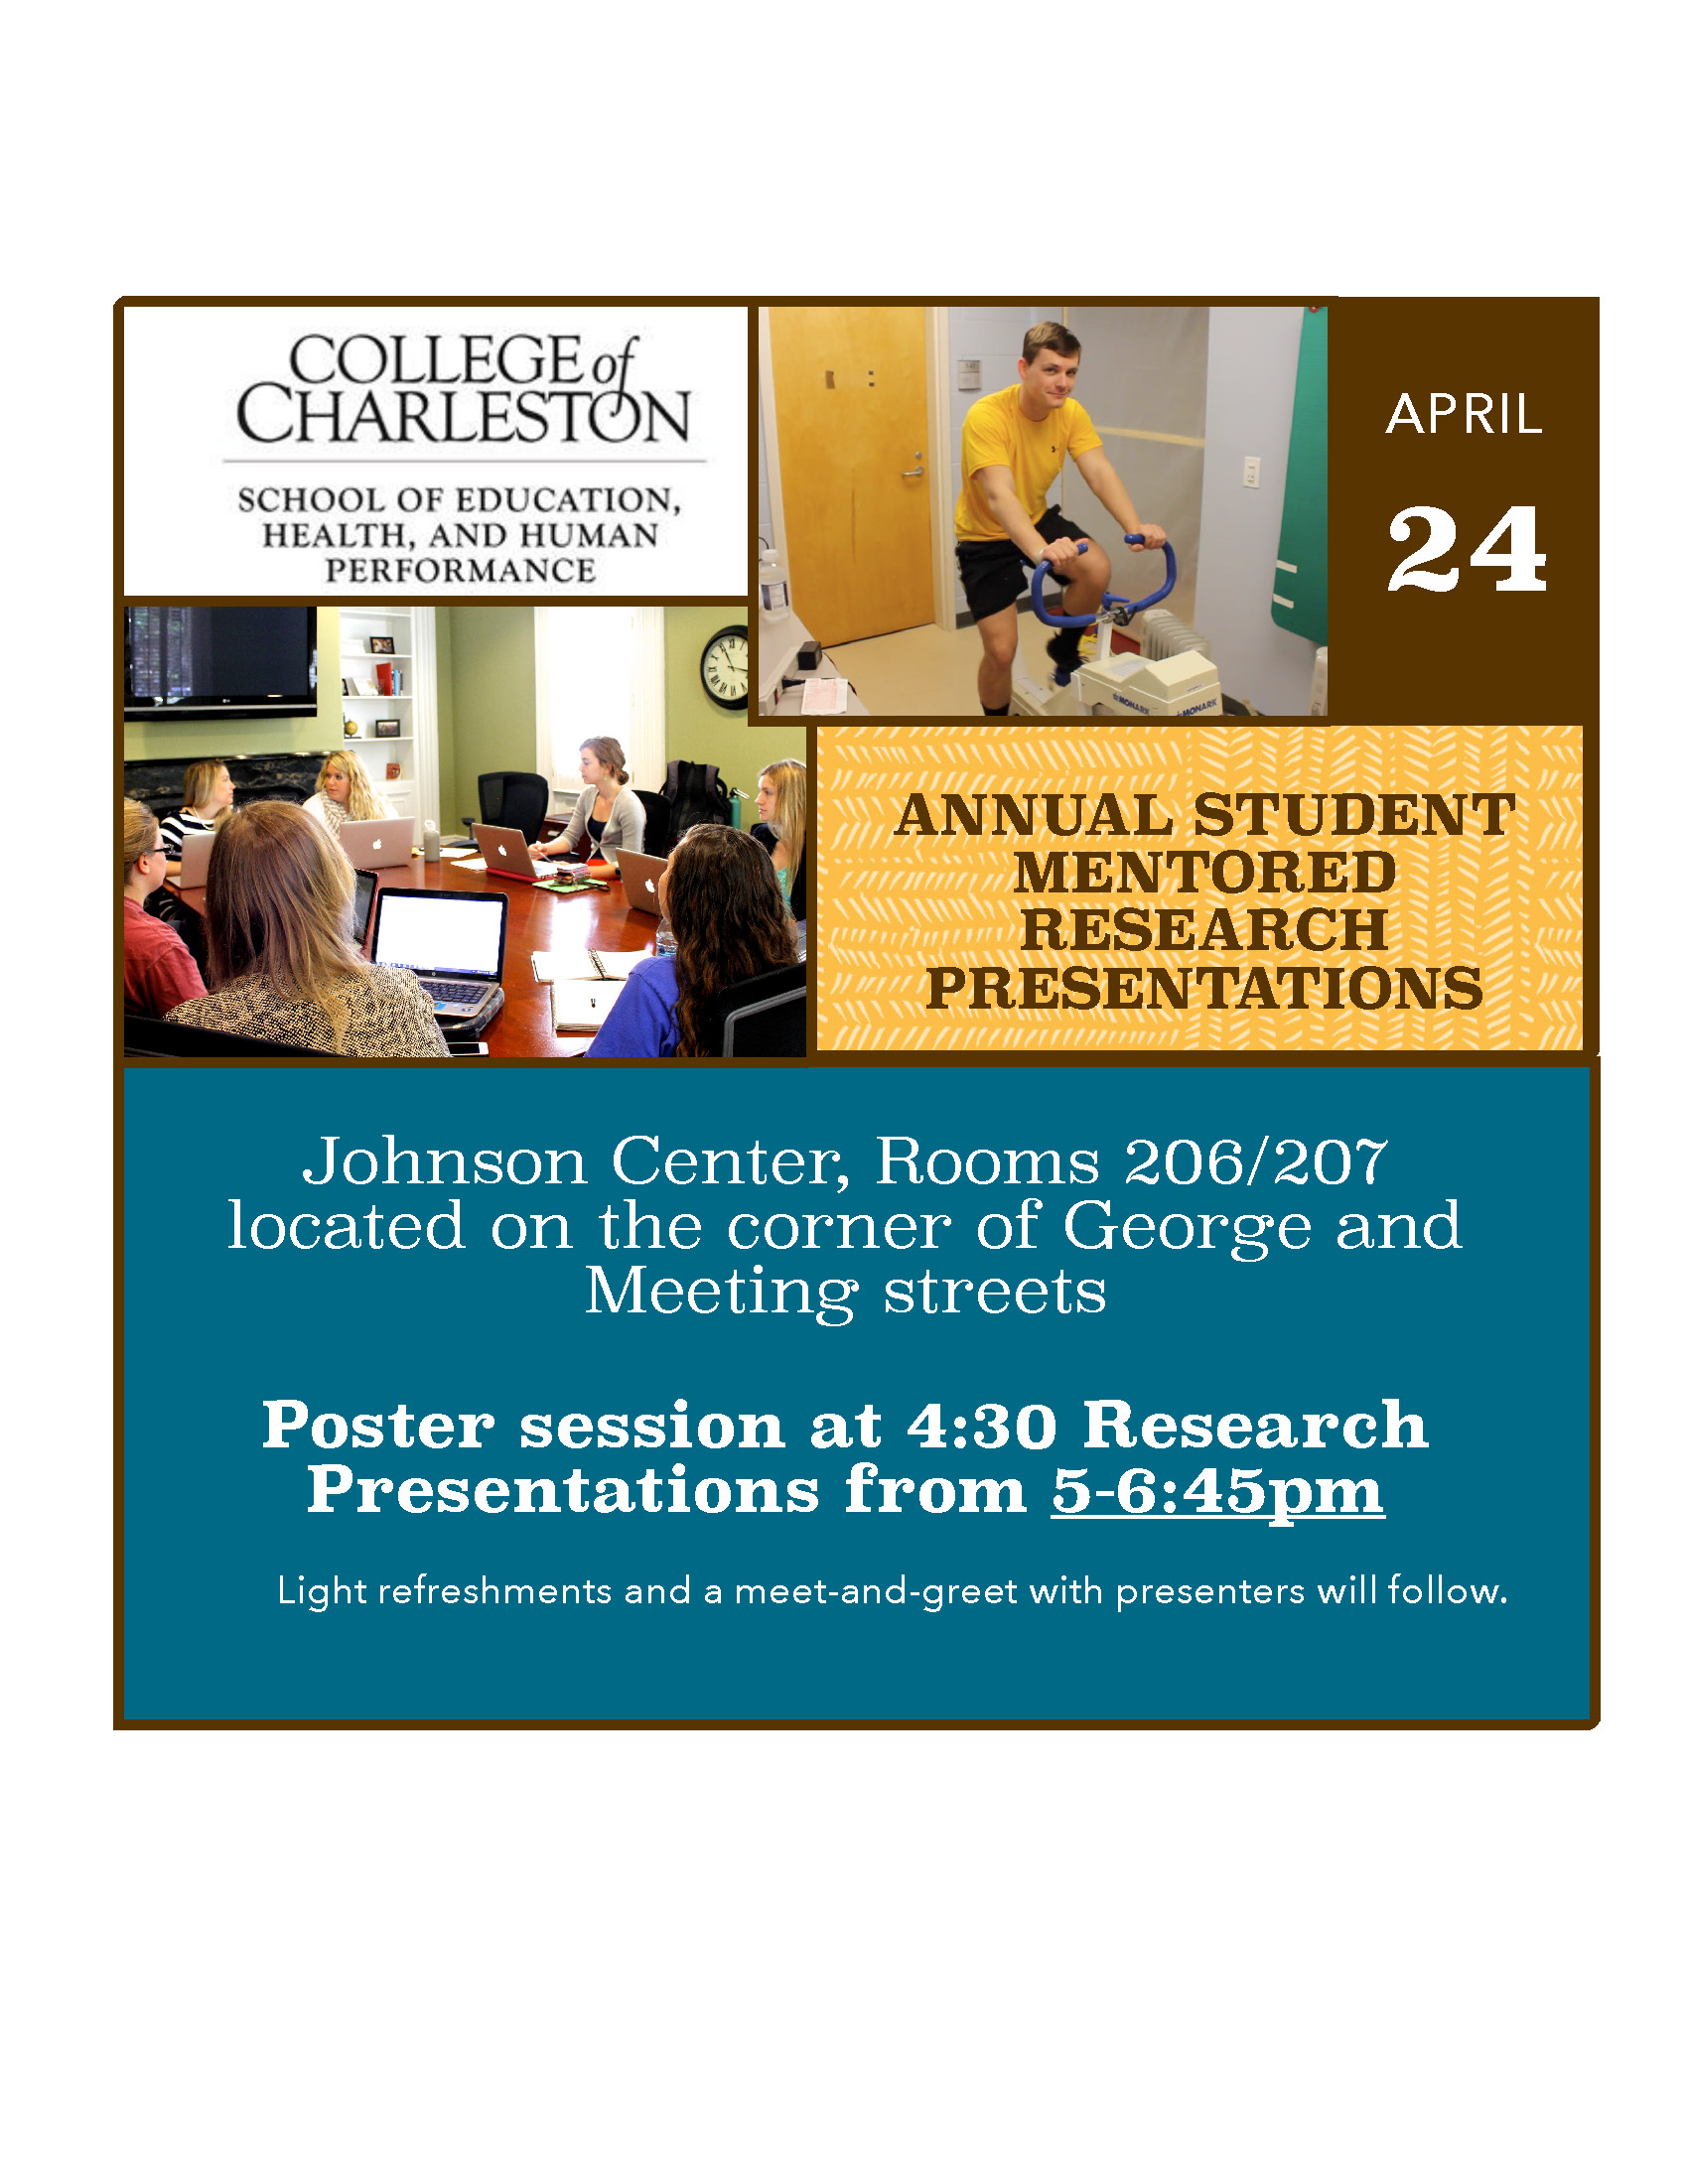 Students Present Research On Health And Human Performance